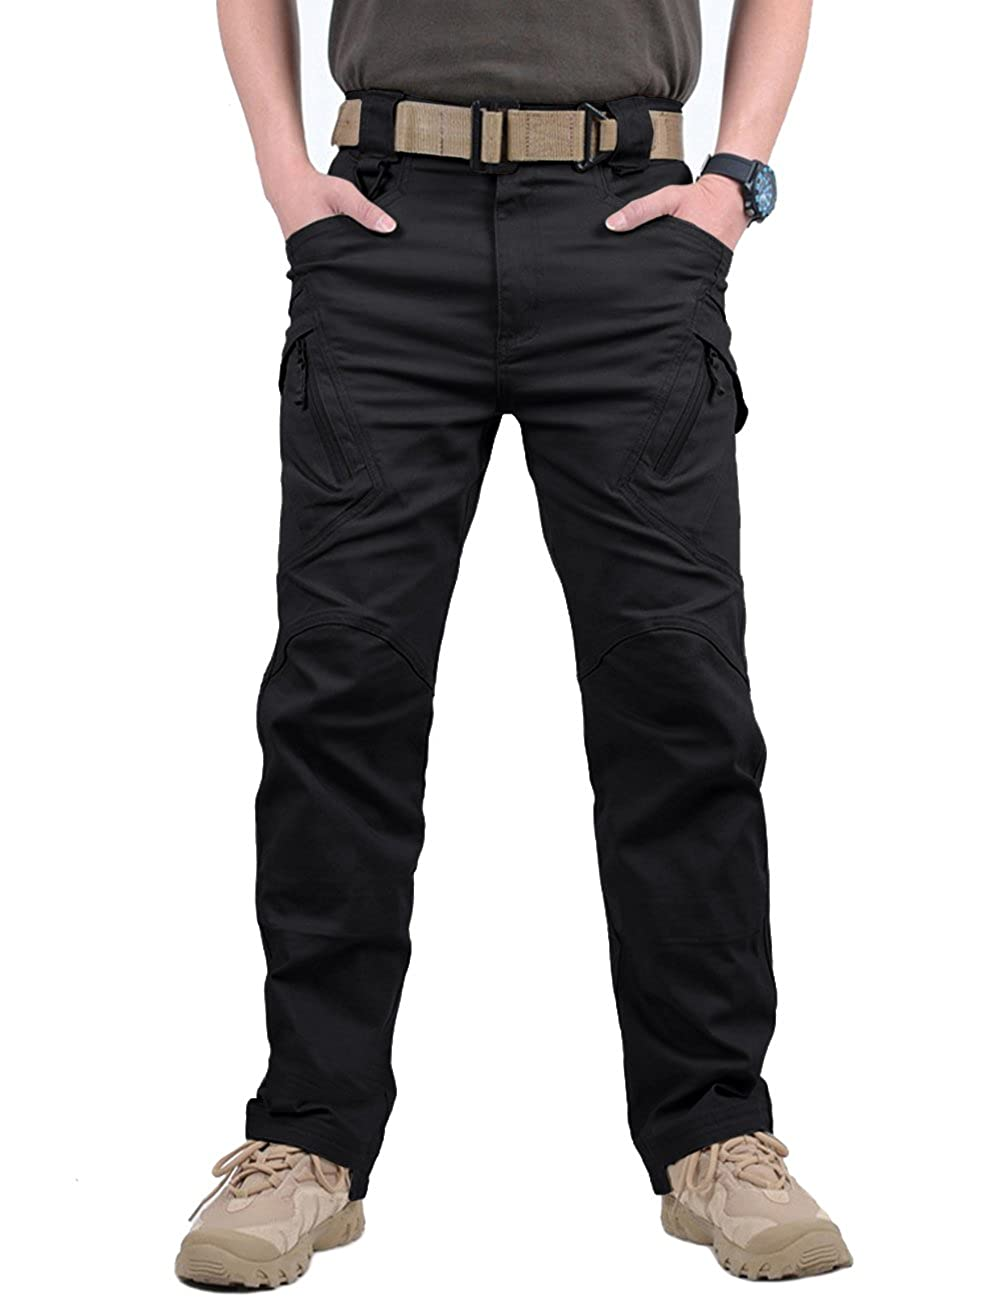 CRYSULLY Mens Tactical Pants Military Cotton Mutil Pockets Assault Cargo Work Trousers 9Q